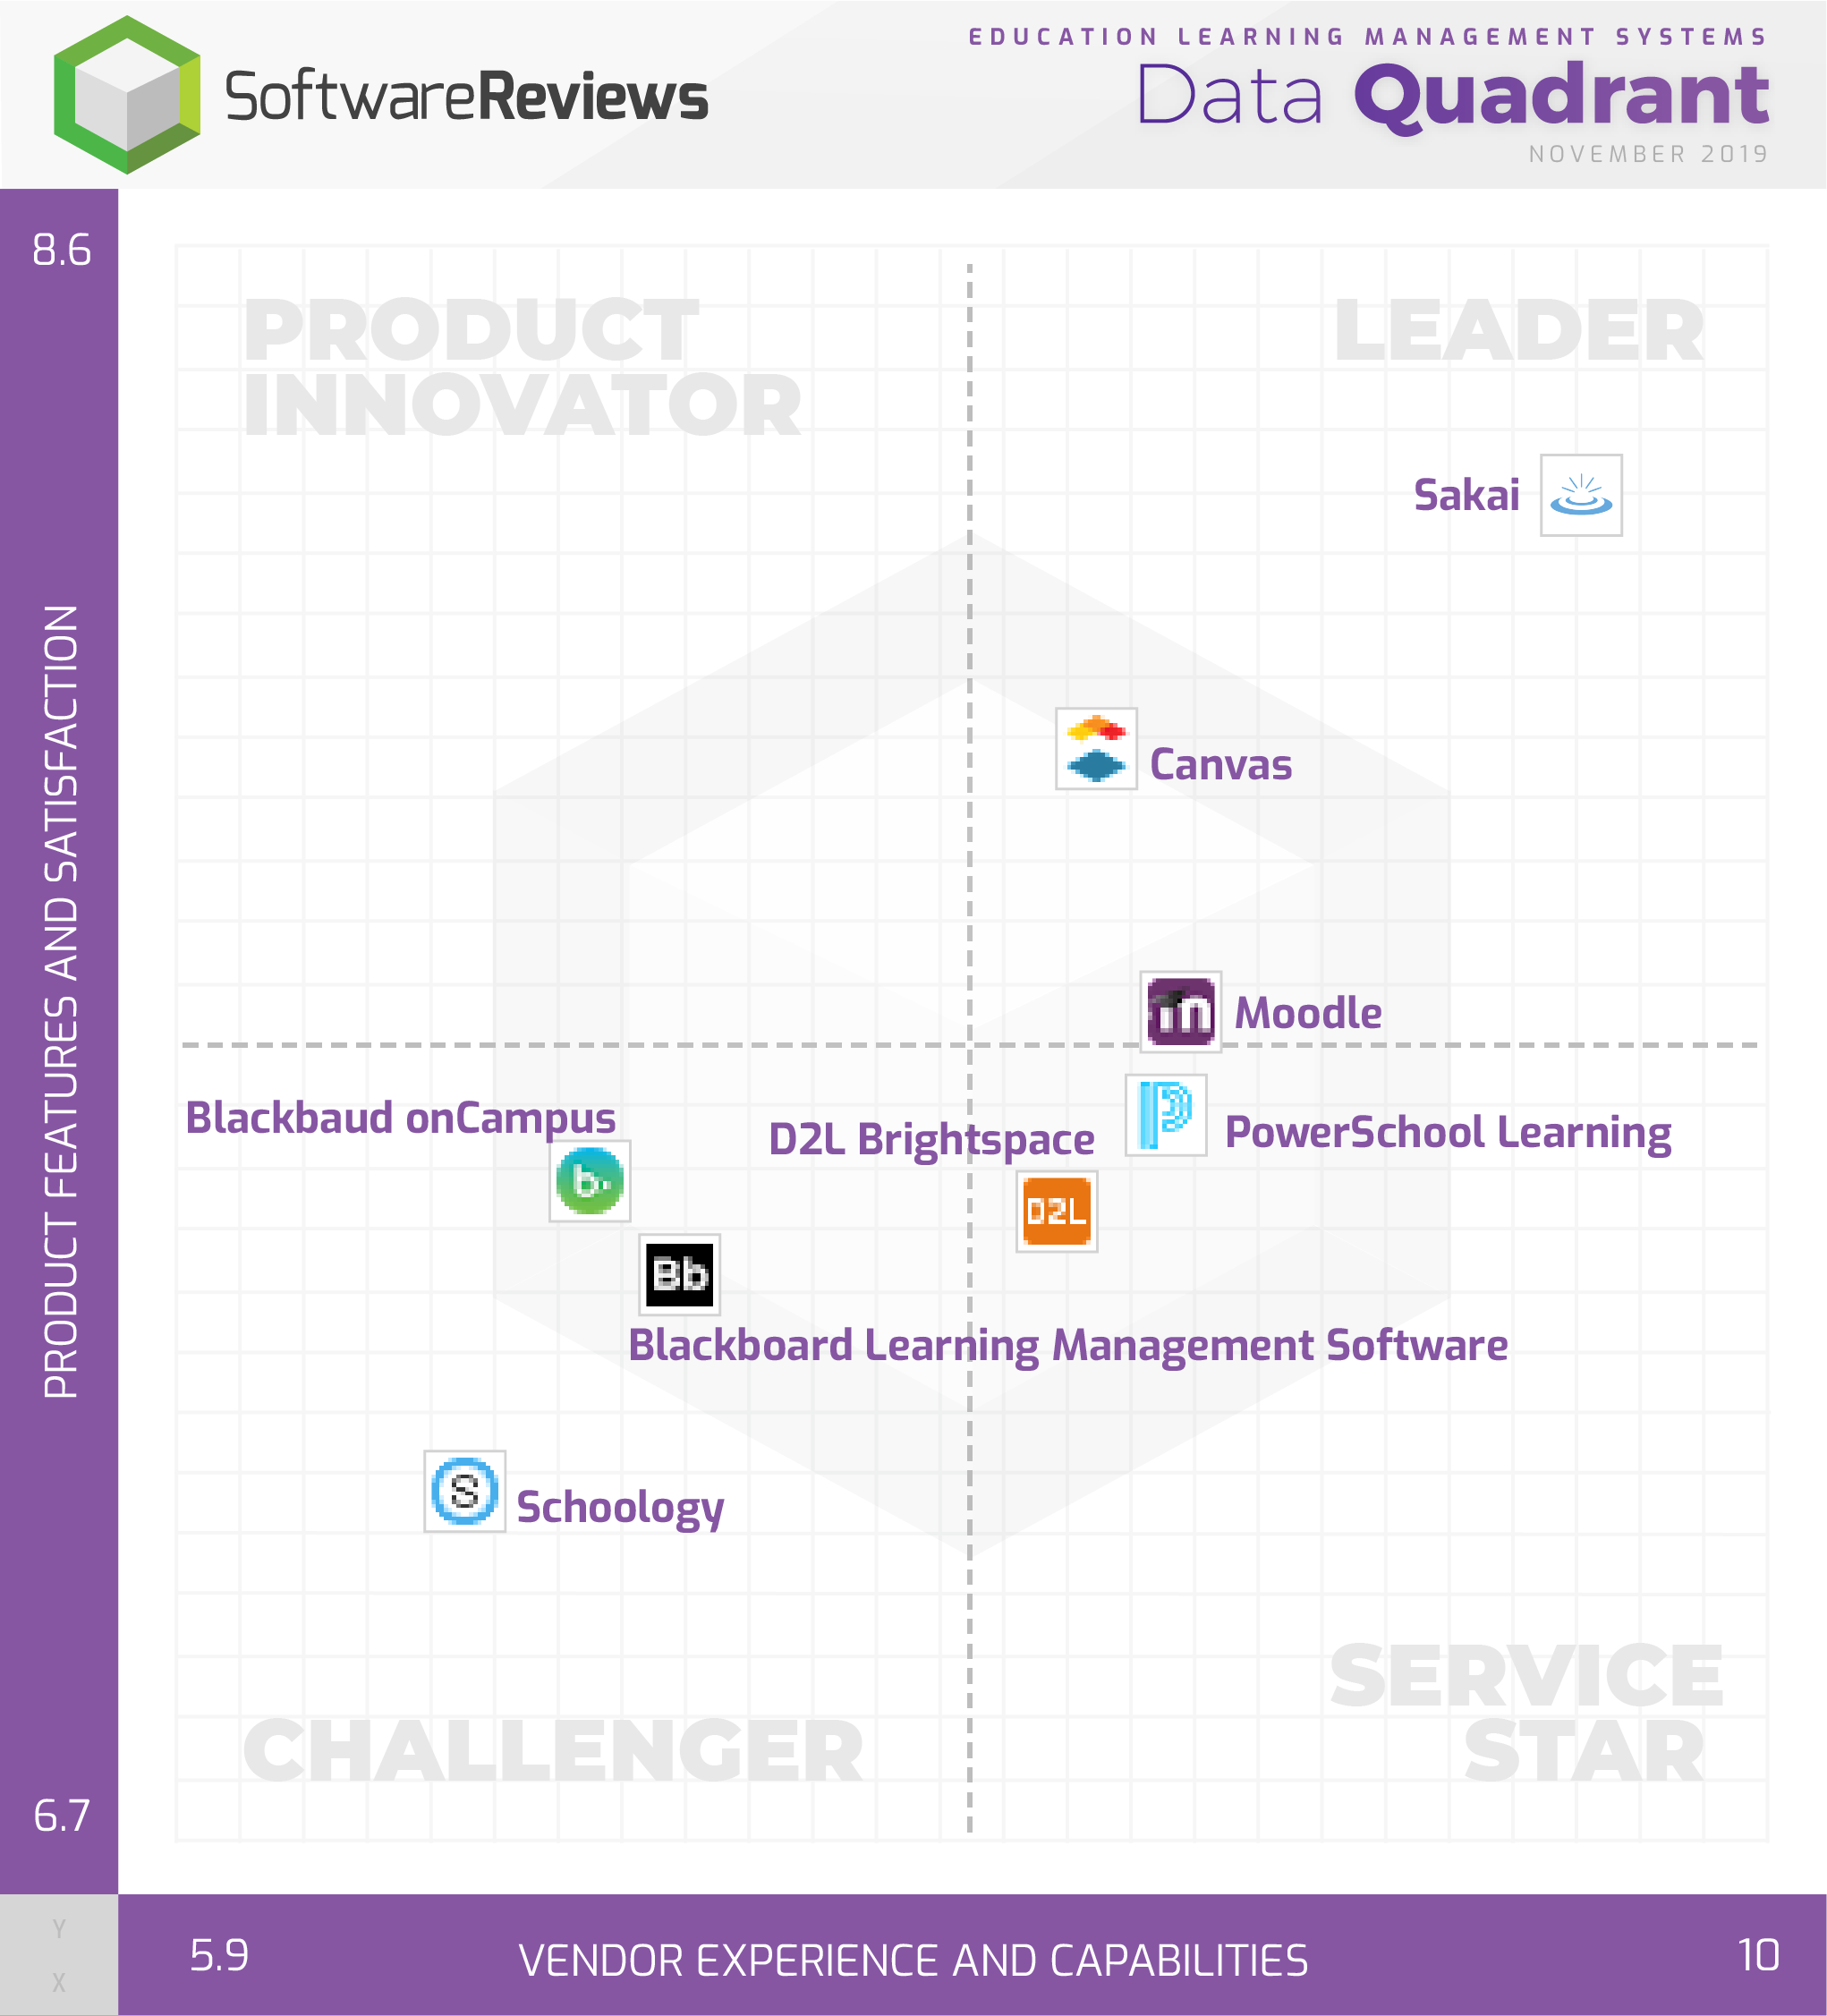 Education Learning Management Systems Data Quadrant